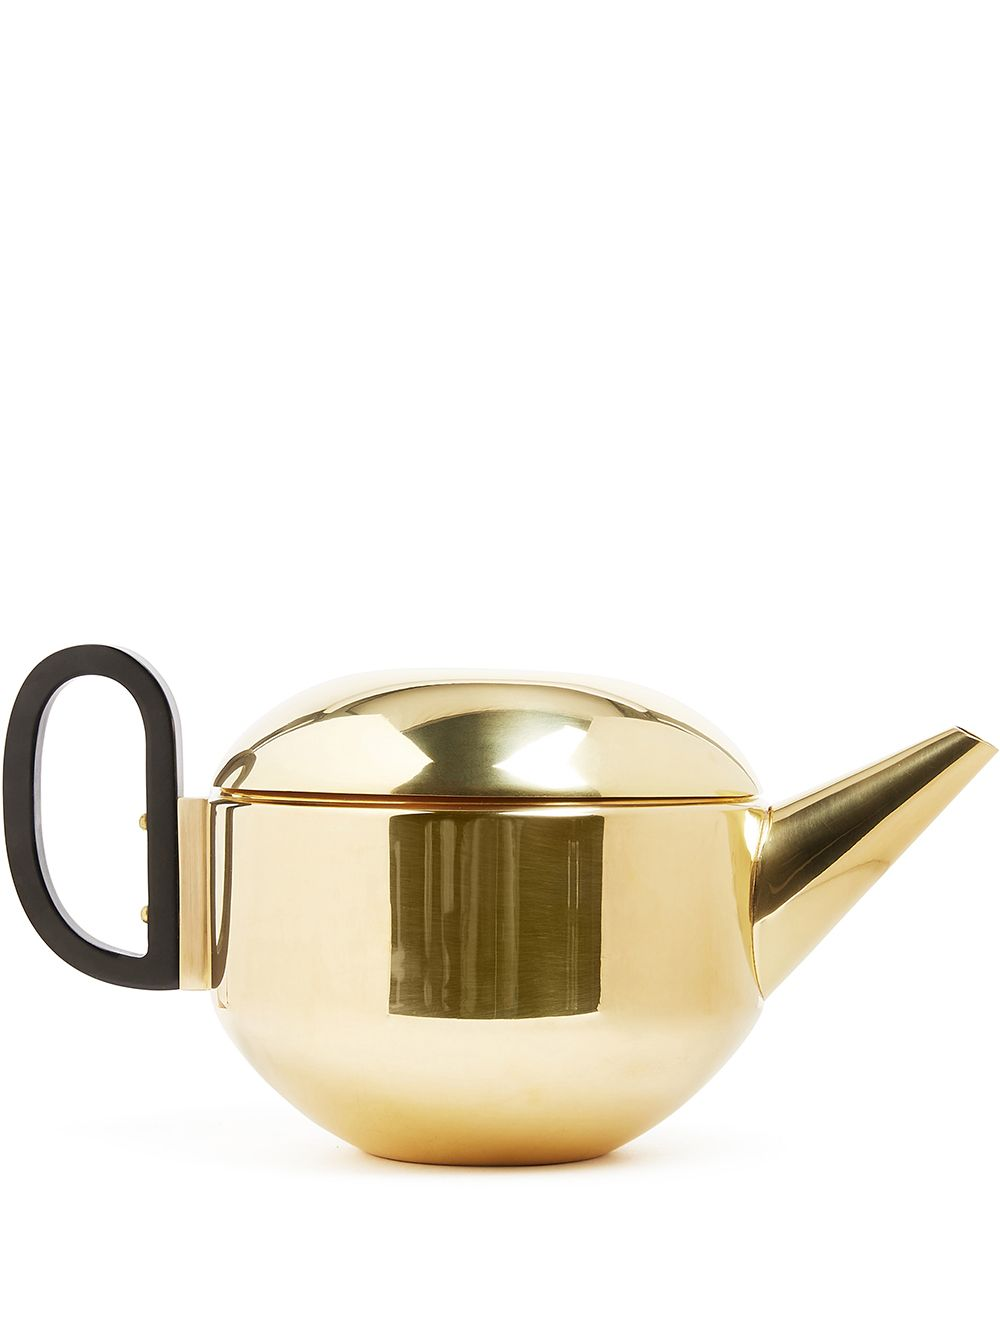 Tom Dixon 'Form' Teekanne - Gold von Tom Dixon